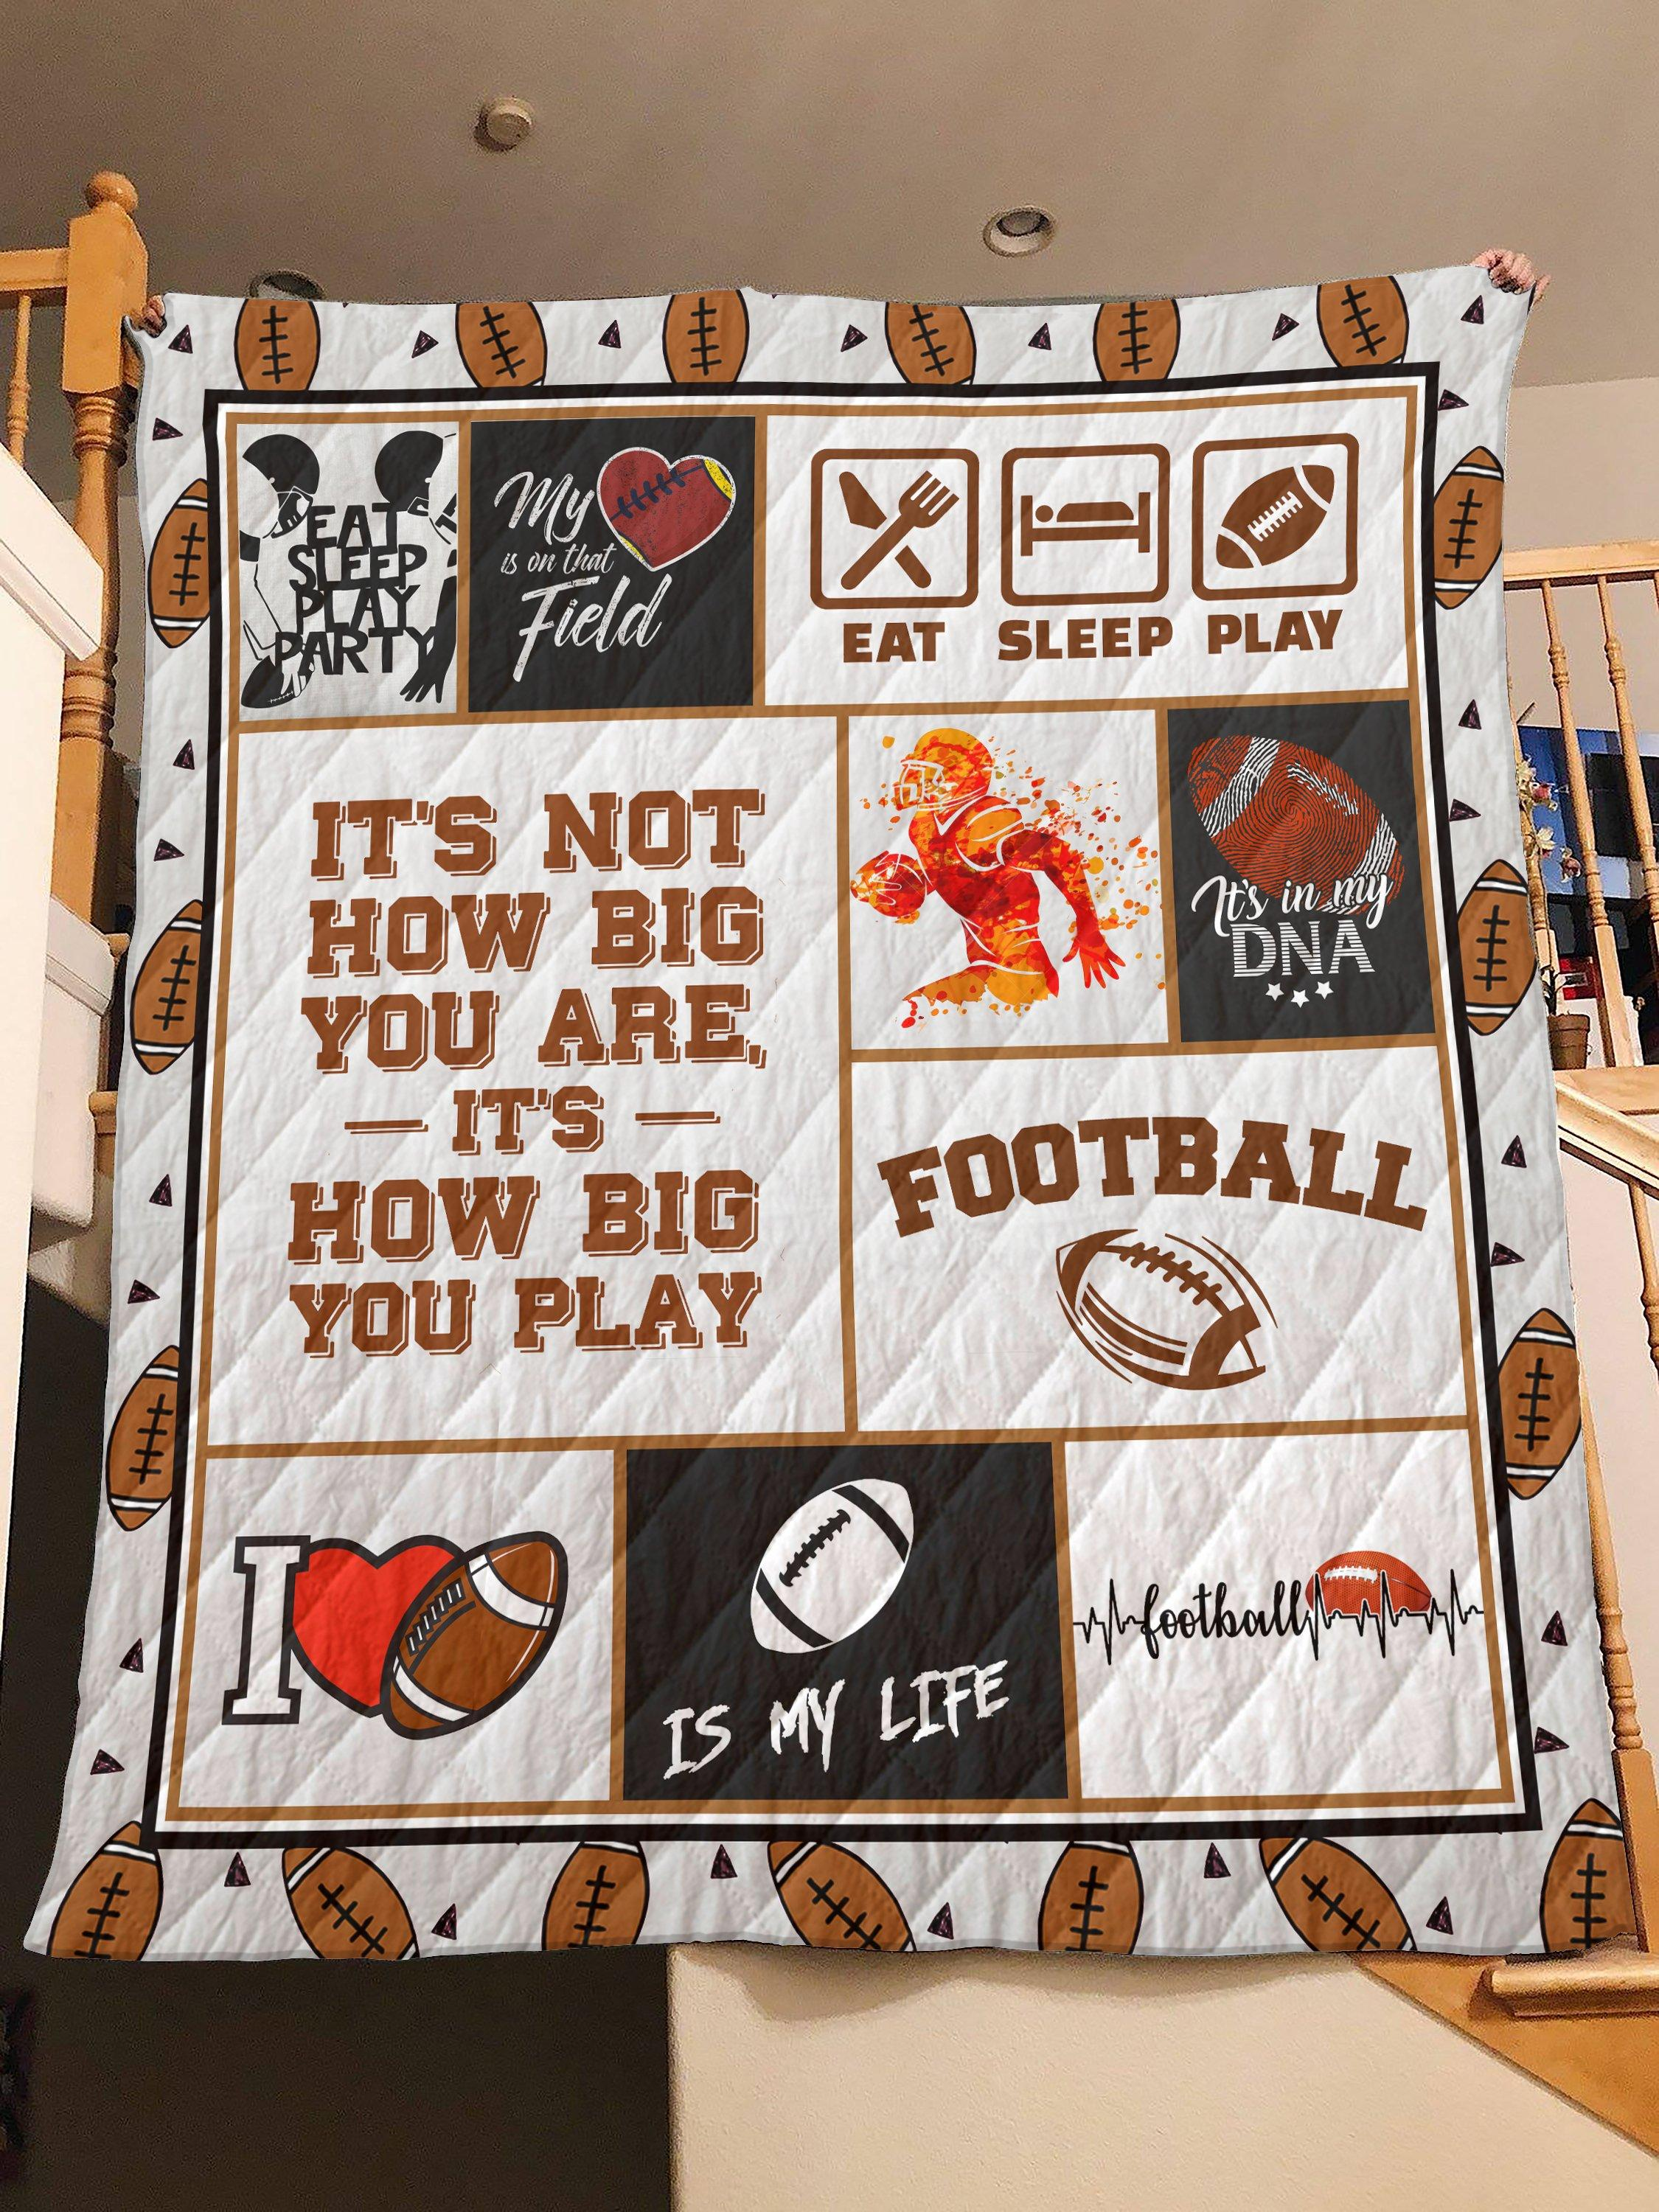 Football it's not how big you are it's how big you play quilt - queen